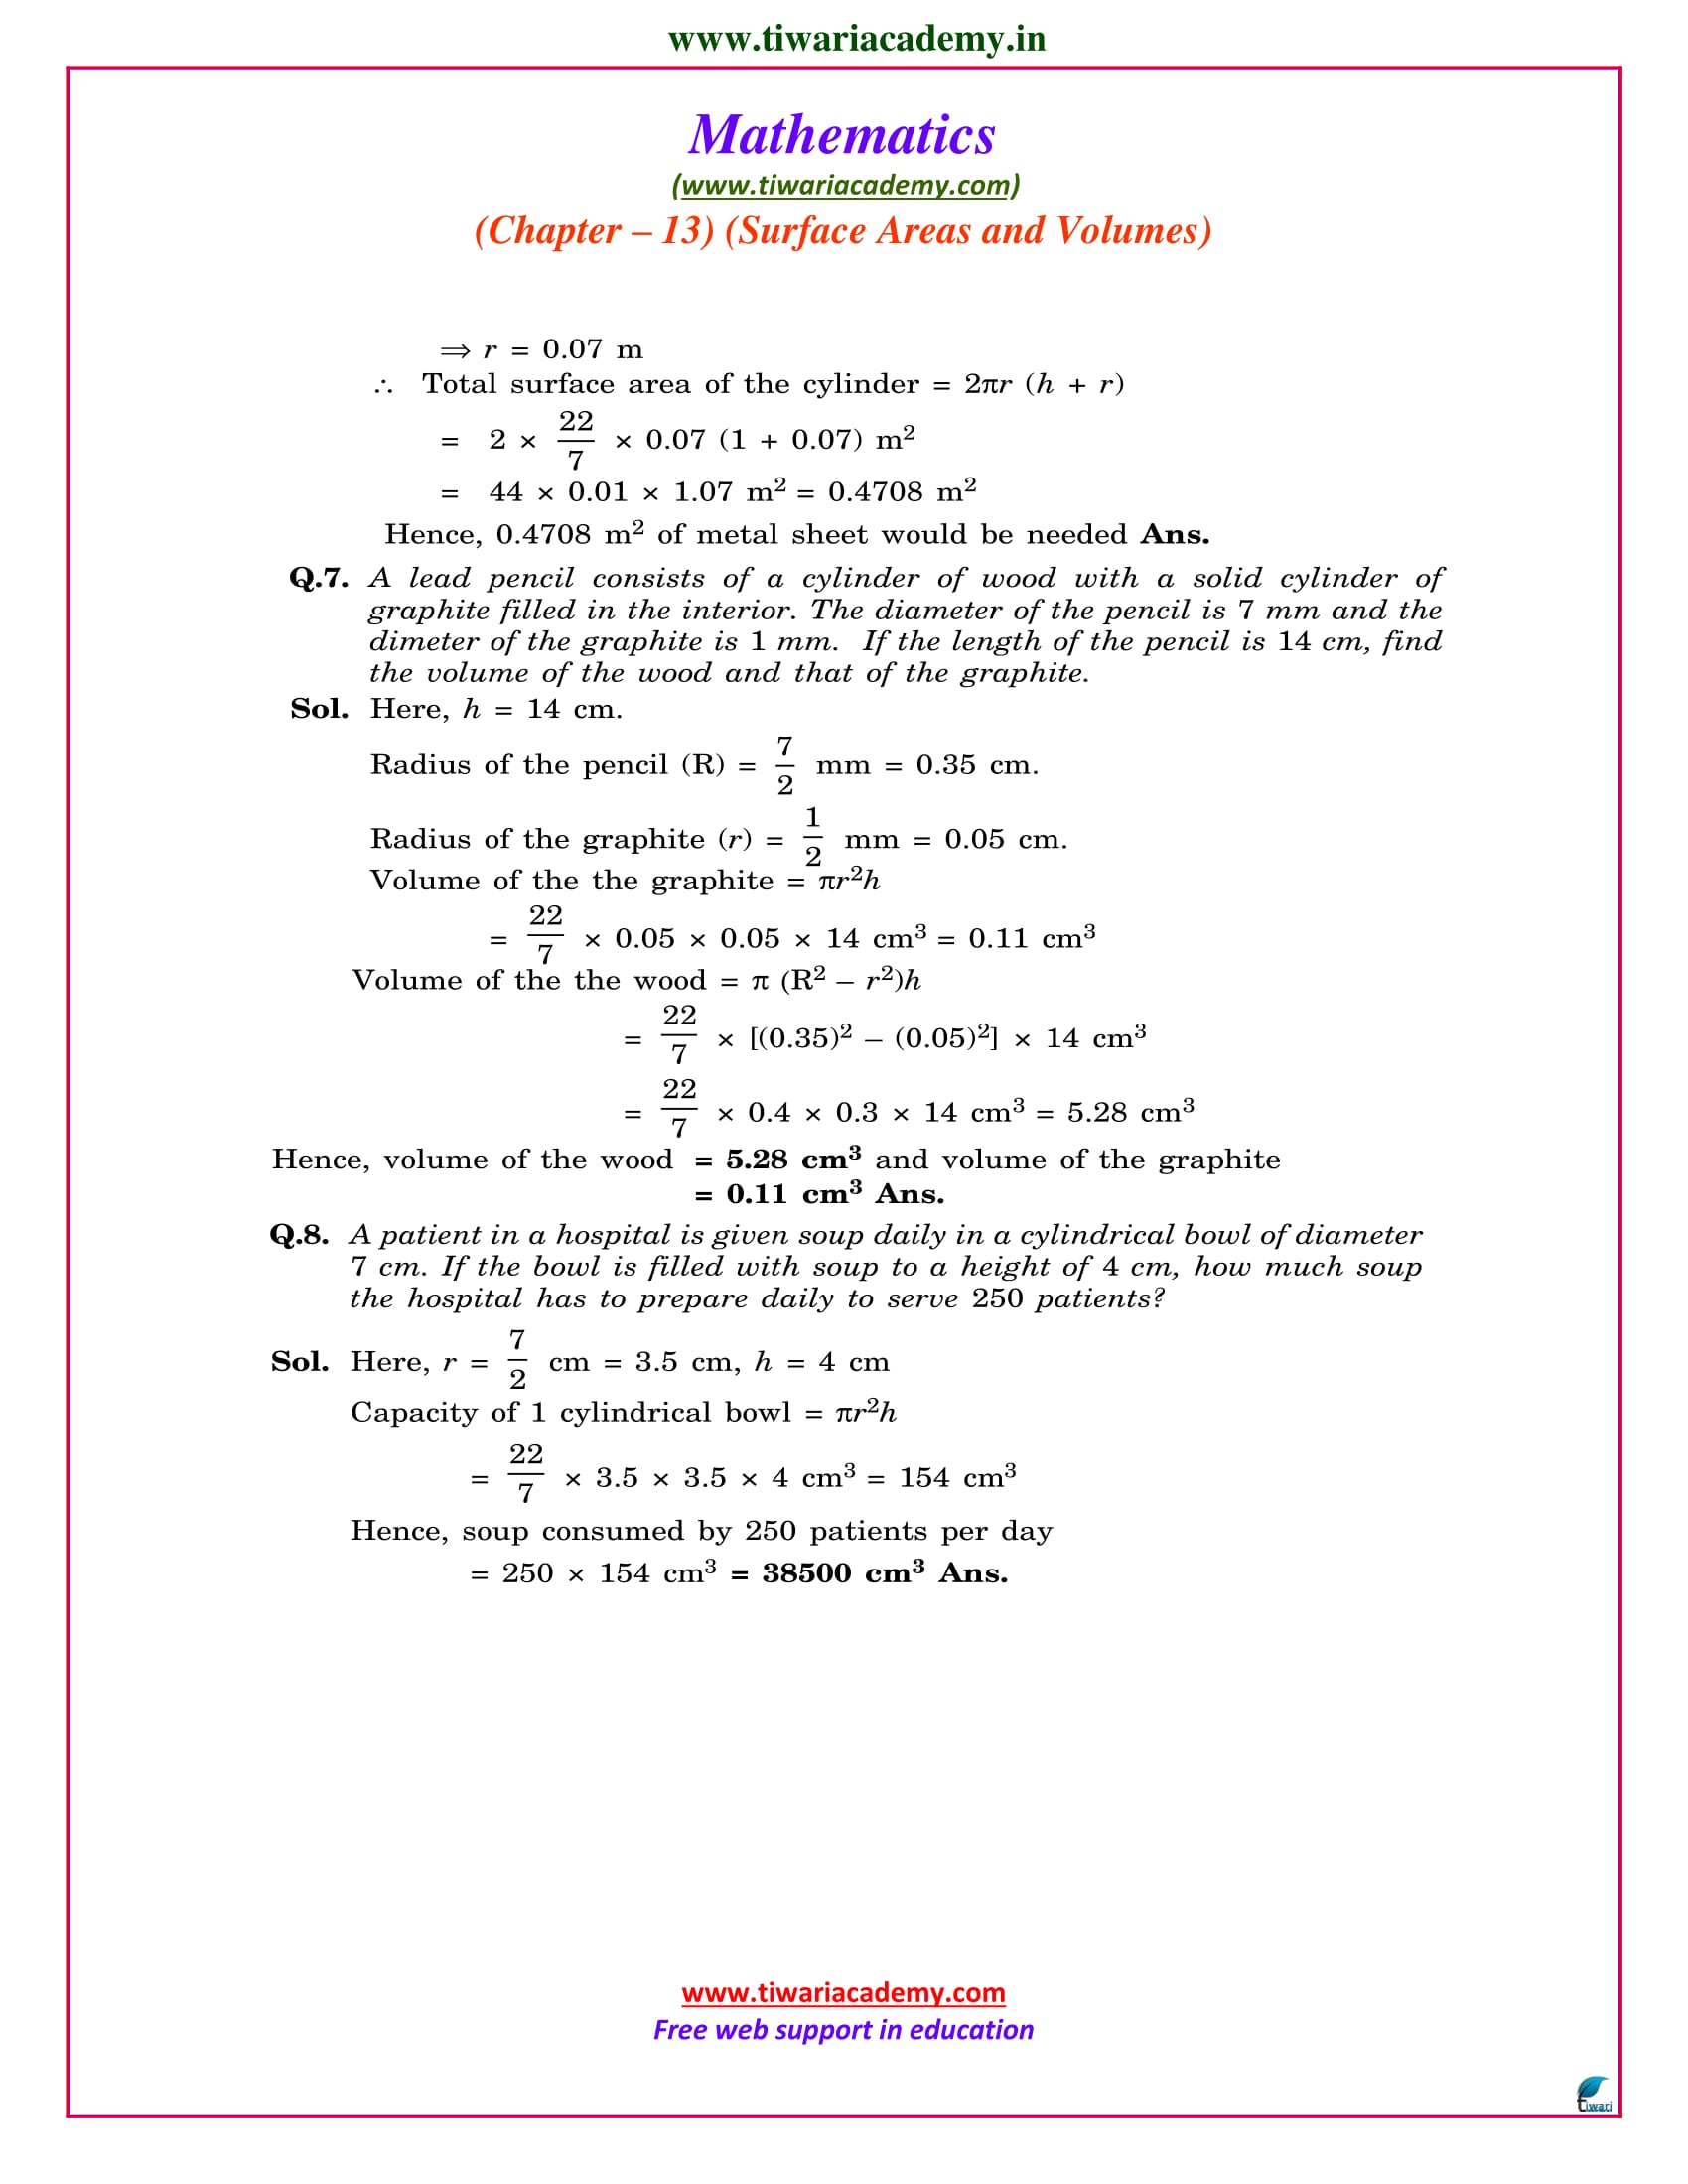 class 9 maths chapter 13 exercise 13.6 ncert sols